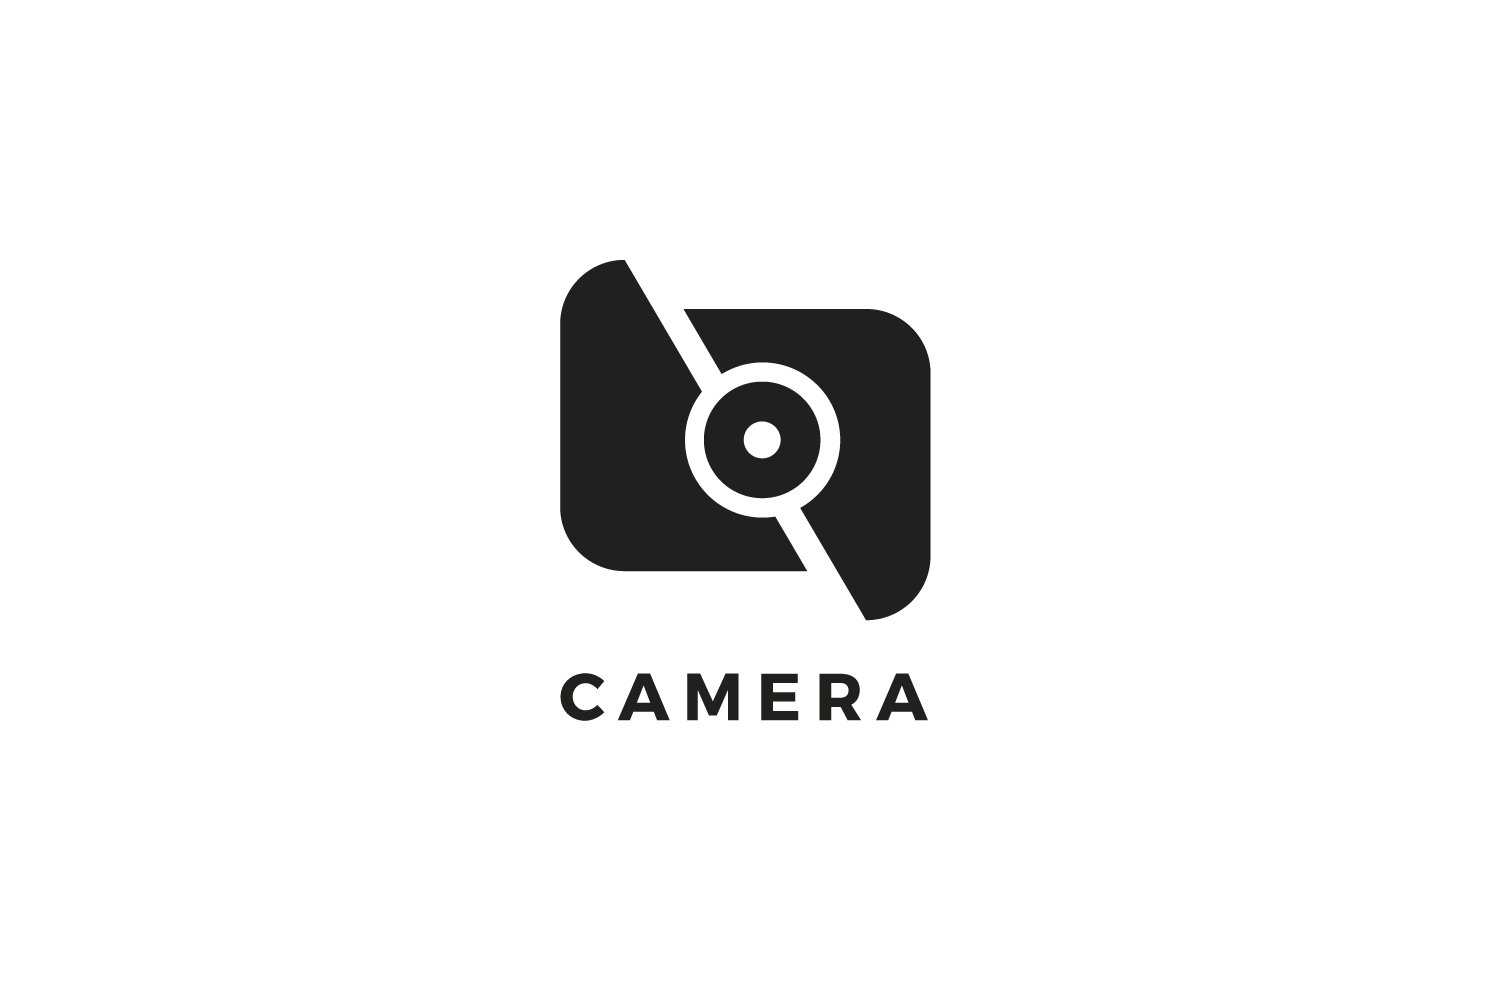 Camera Logo Template ~ Logo Templates ~ Creative Market